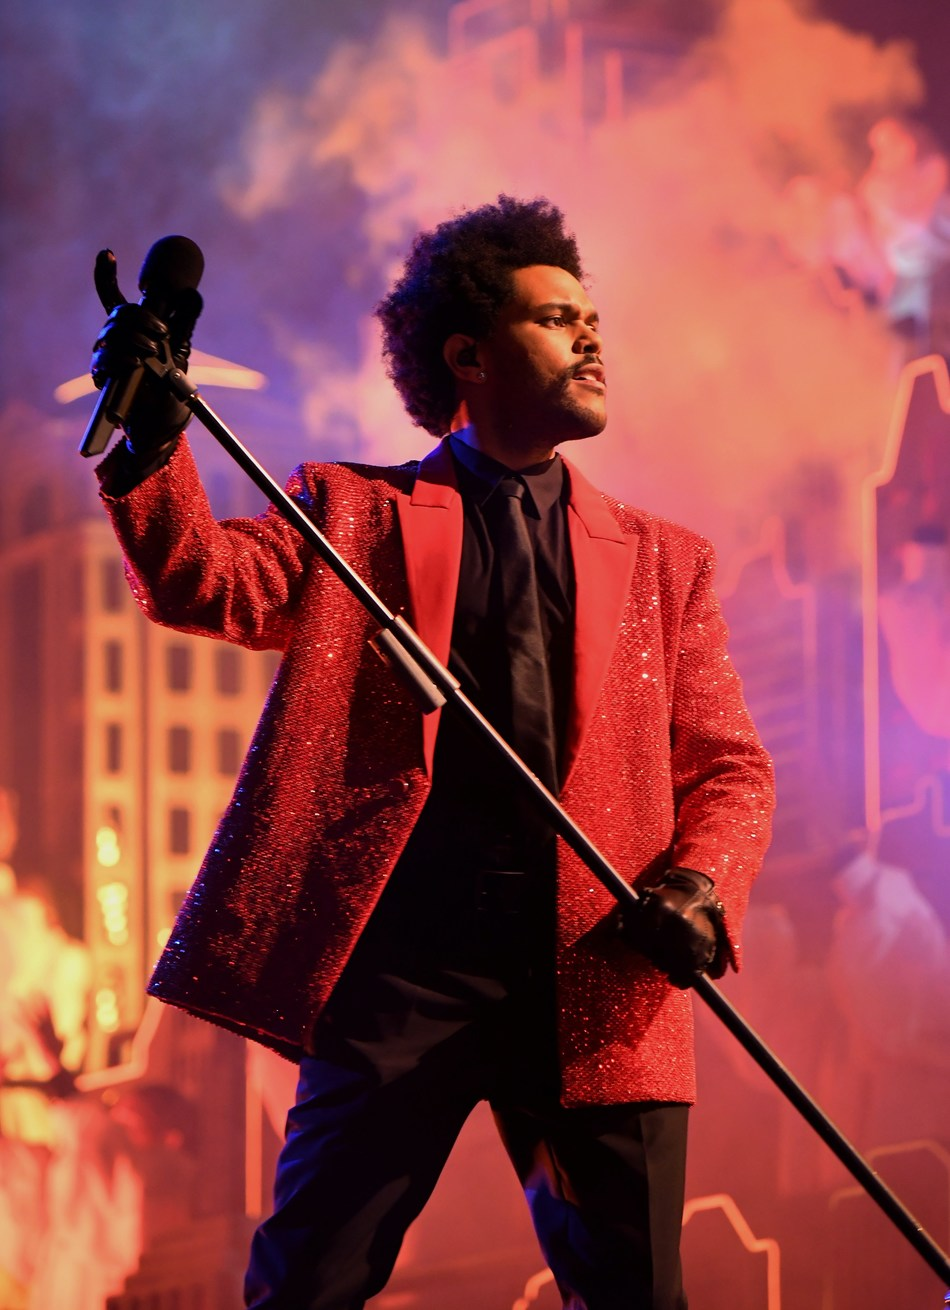 Givenchy dresses The Weeknd for 55th Super Bowl halftime show.